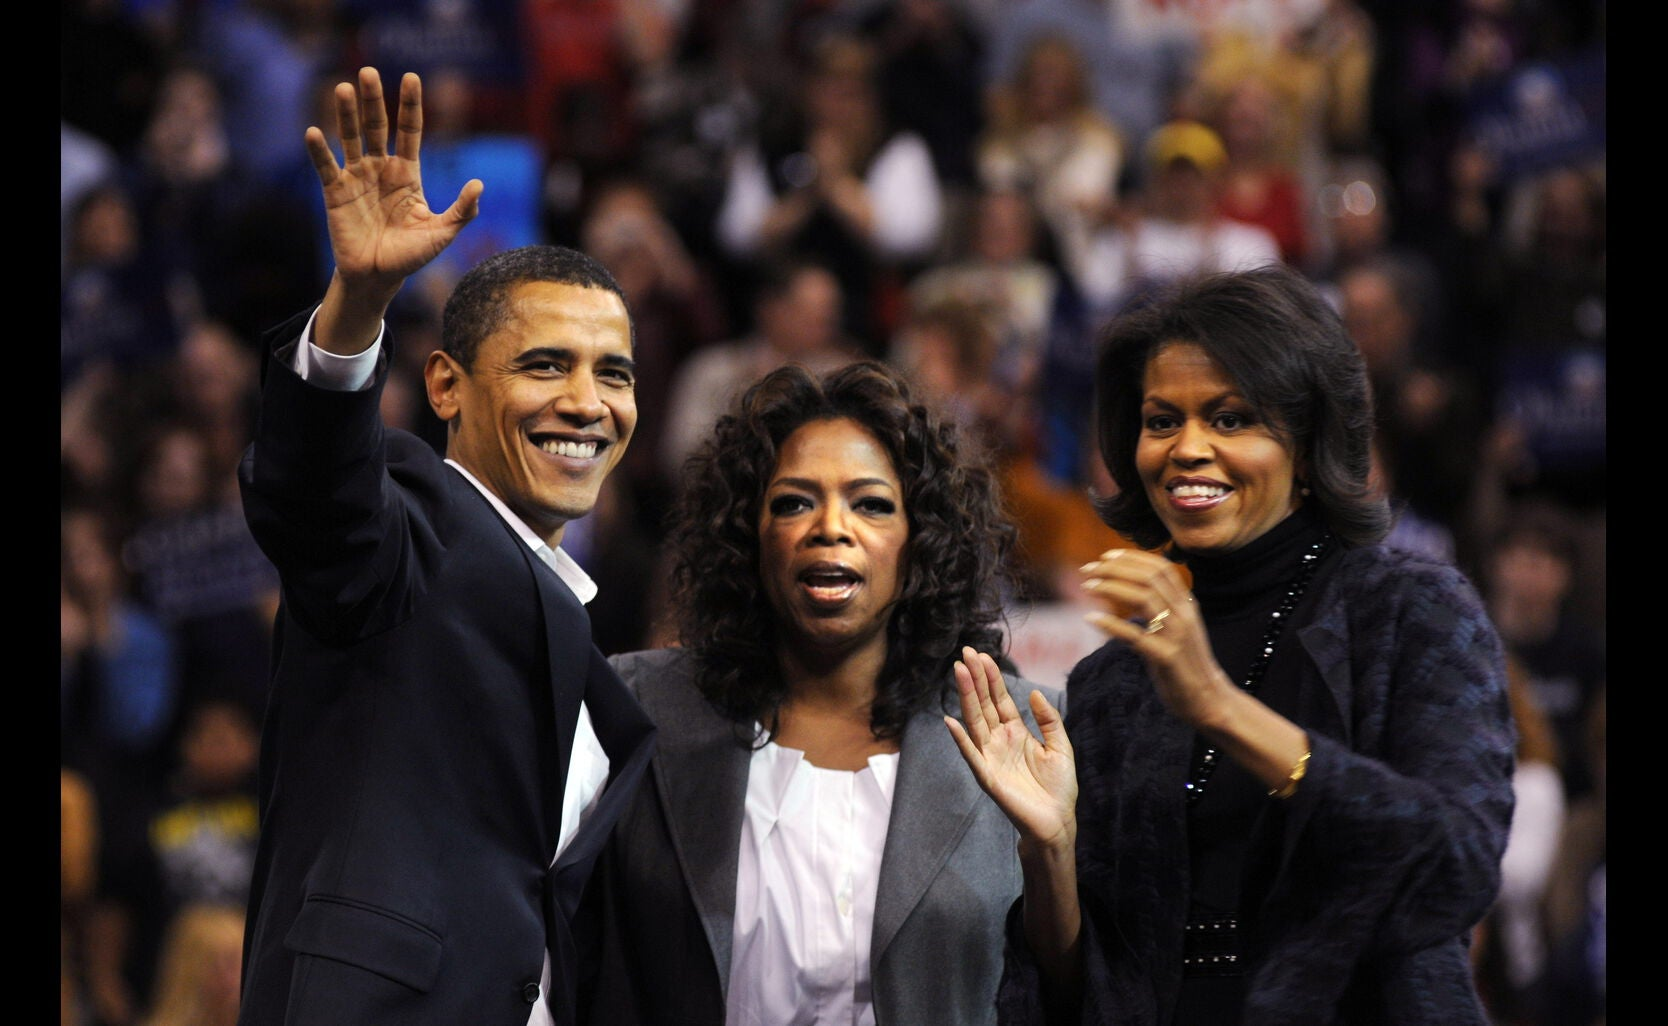 Oprah Winfrey in campaign with and for Barack Obama, 2007